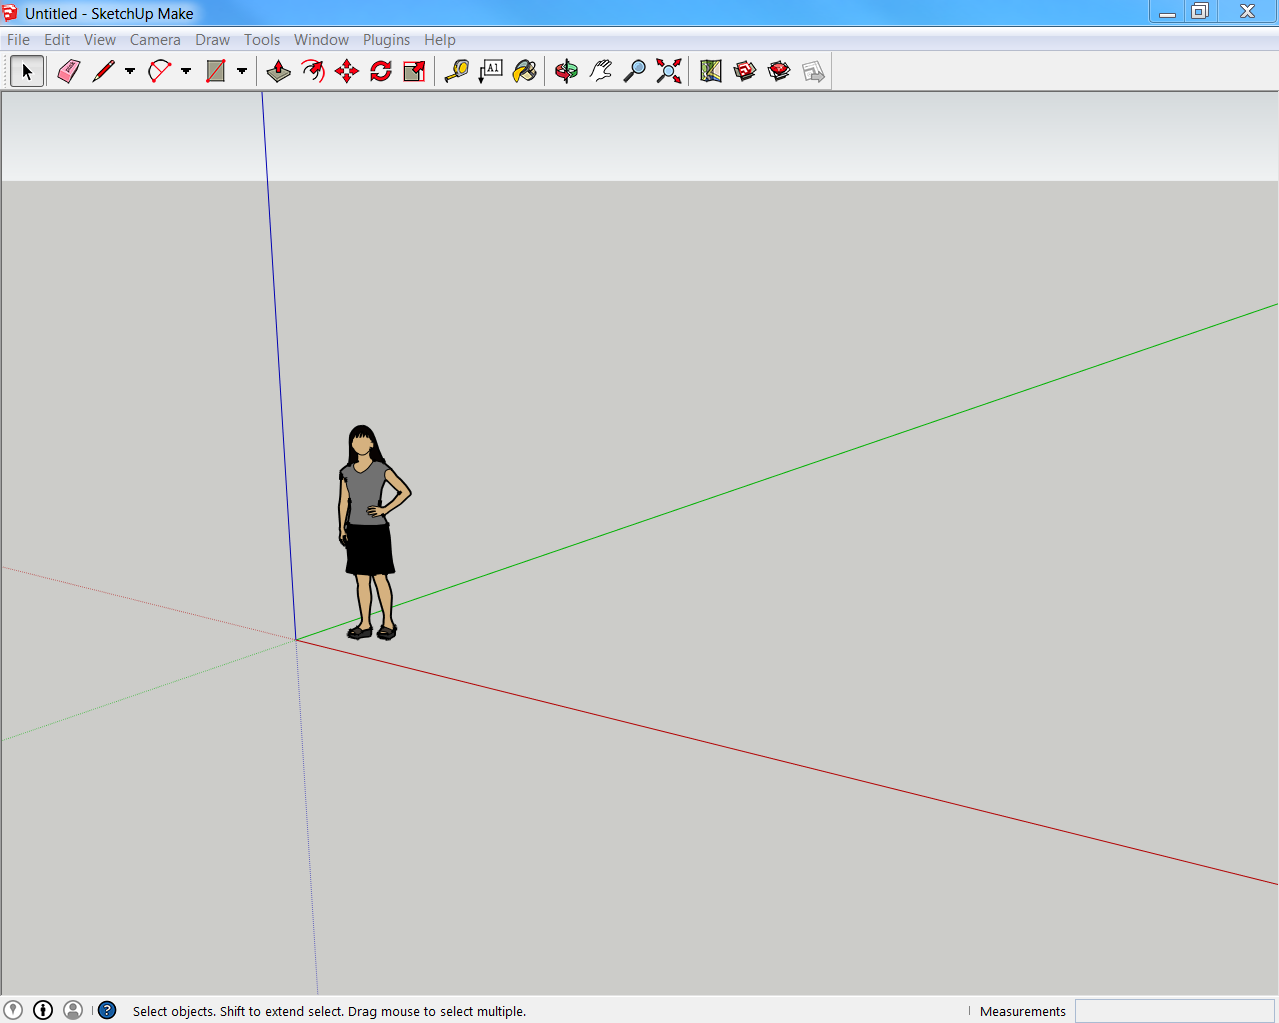 SketchUp Navigation and User Interface Tour, Part 2 - Toolbar and